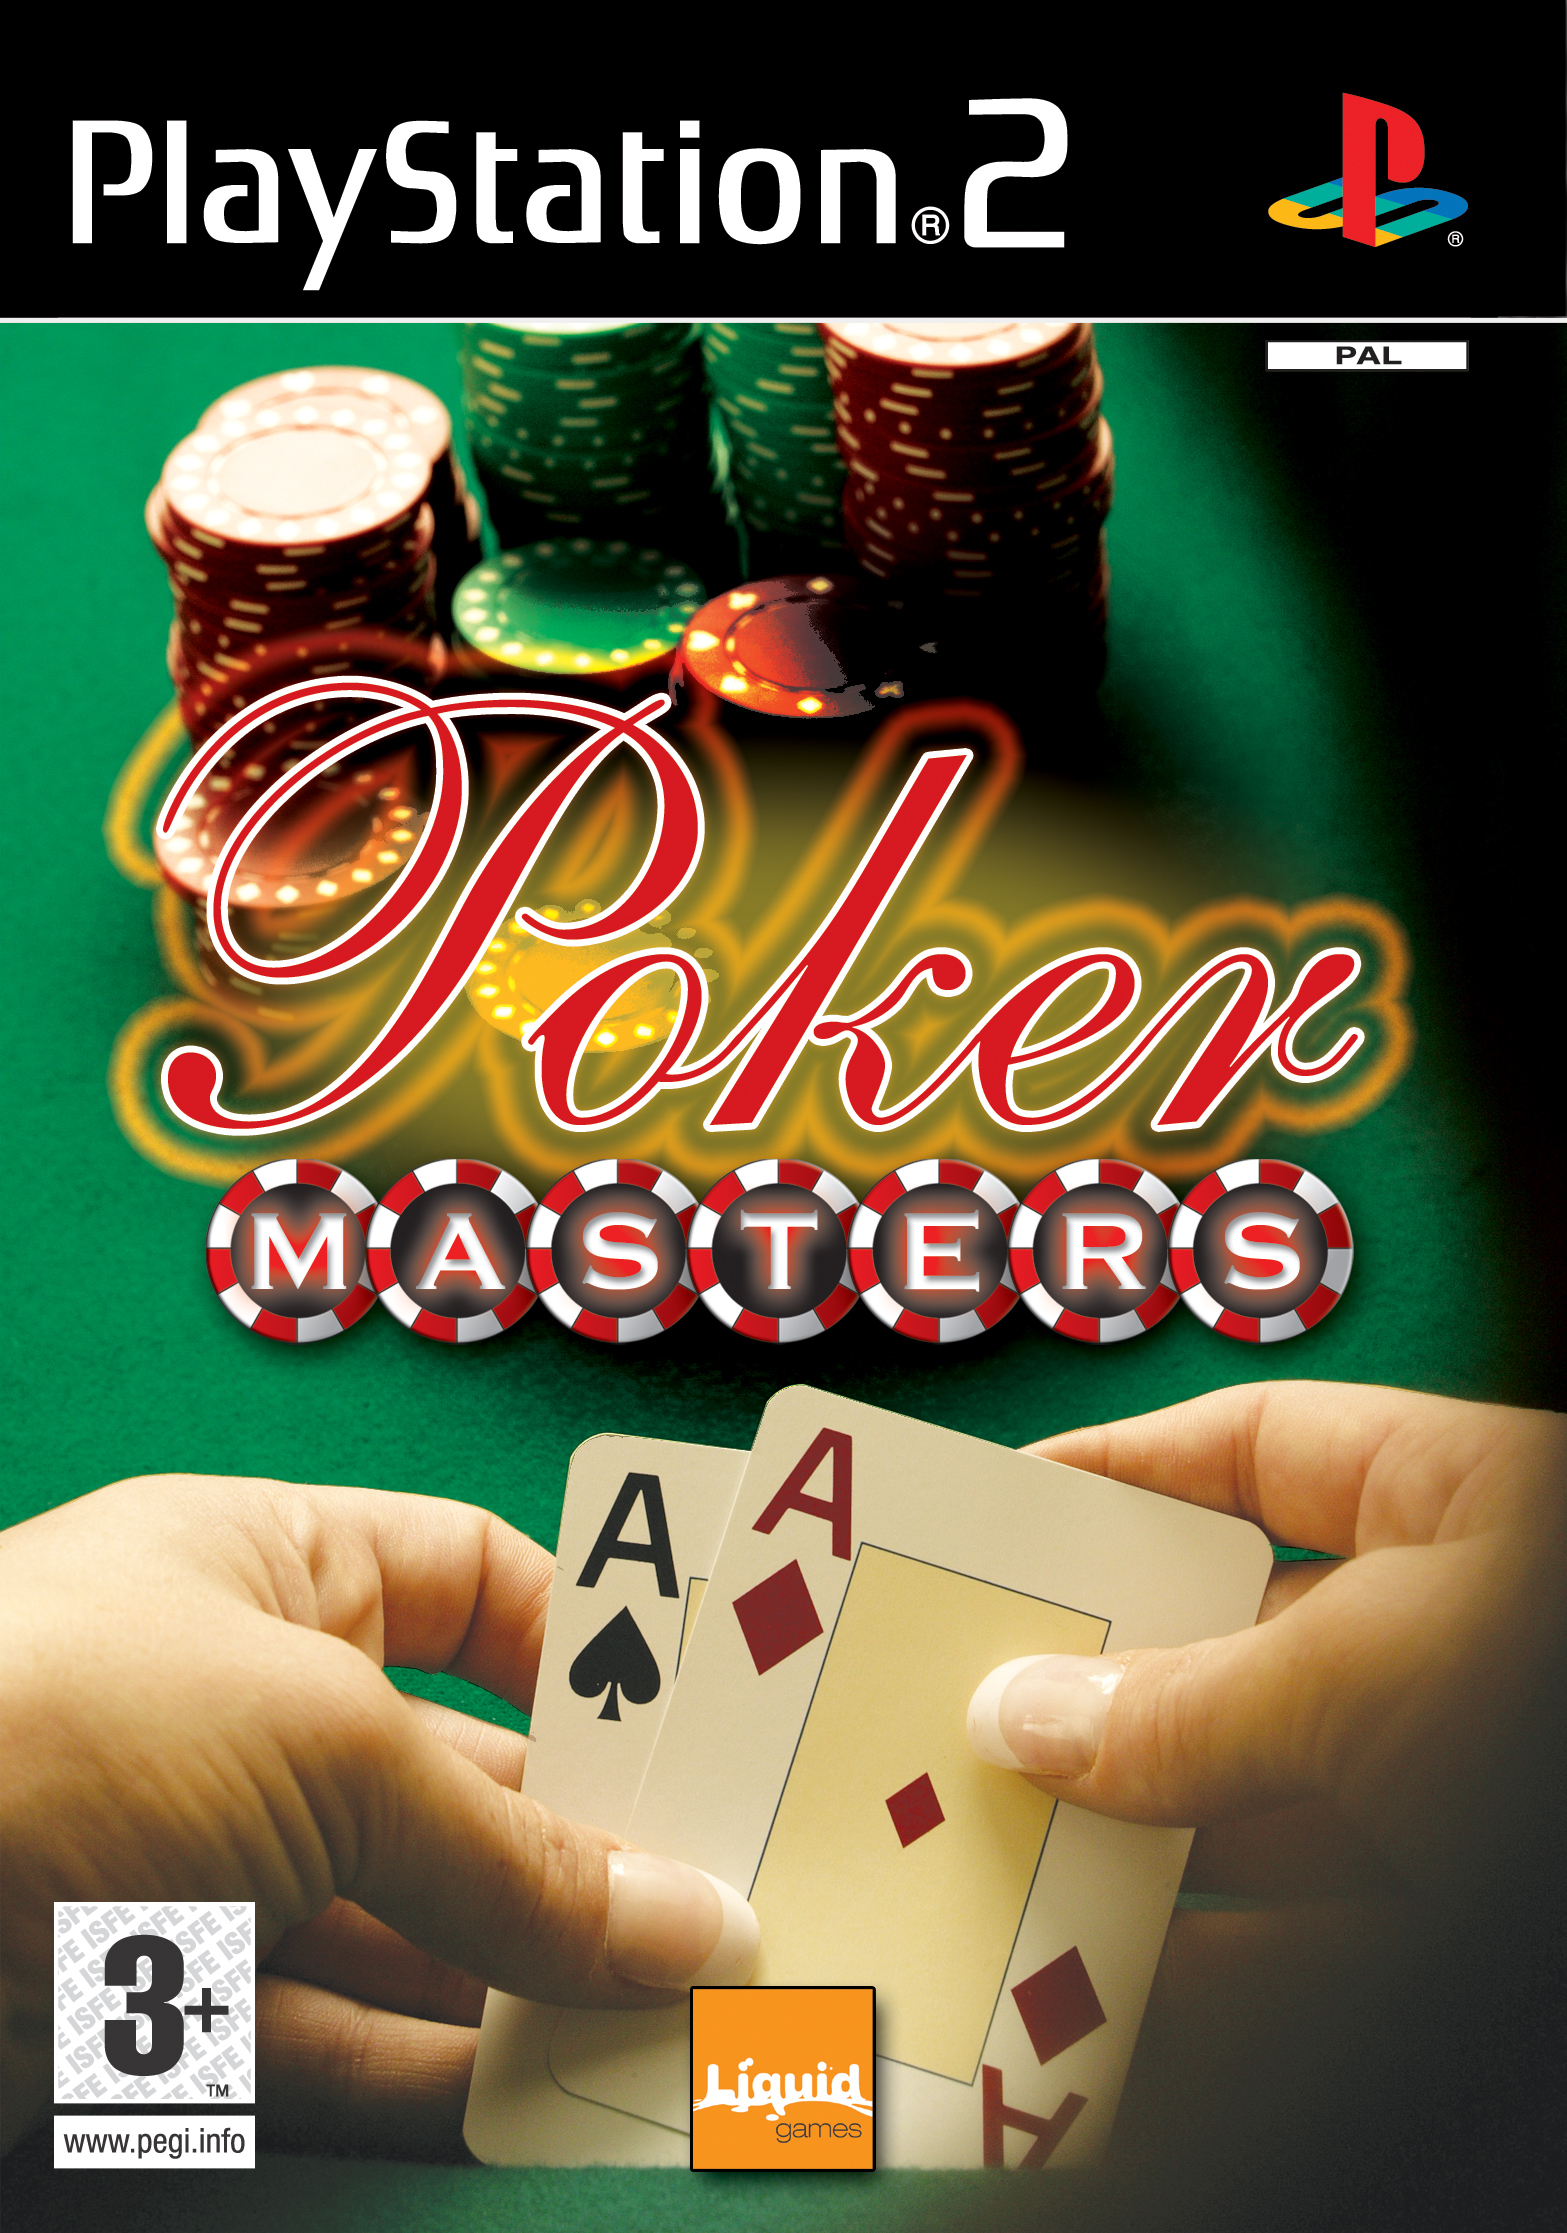 Raising the stakes with Poker Masters